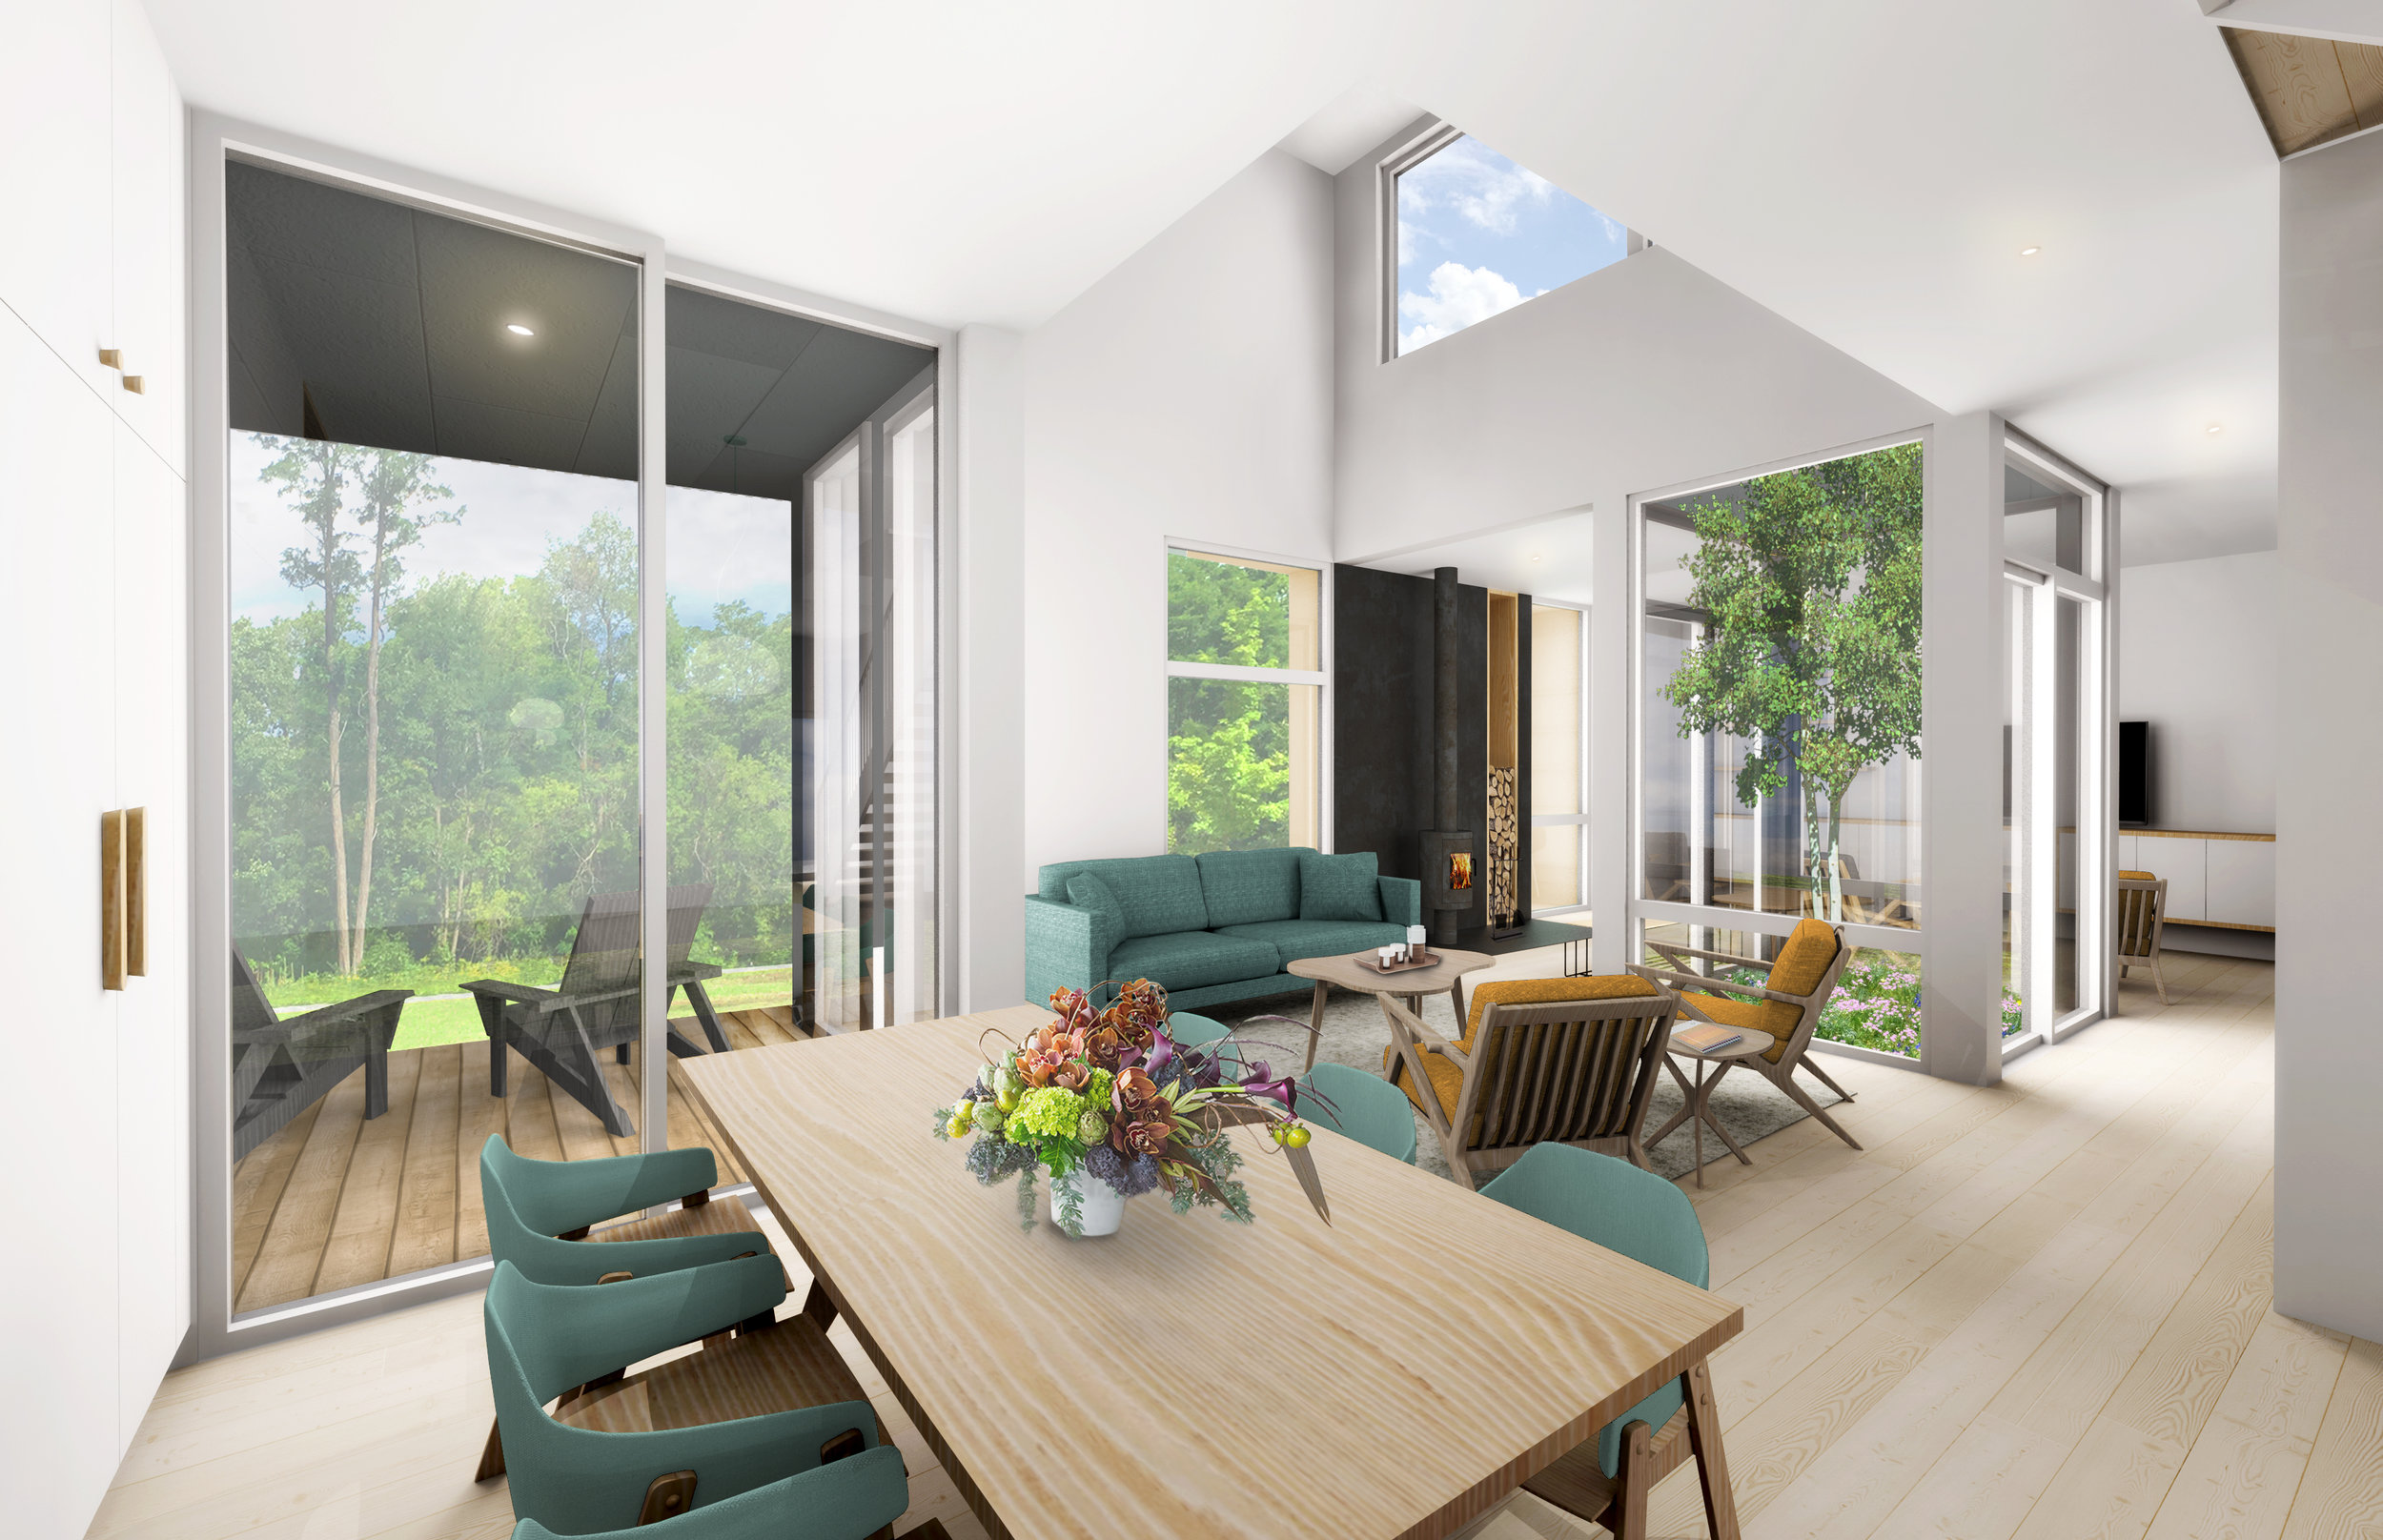 Interior rendering of the Riverhouses at Cable Mills